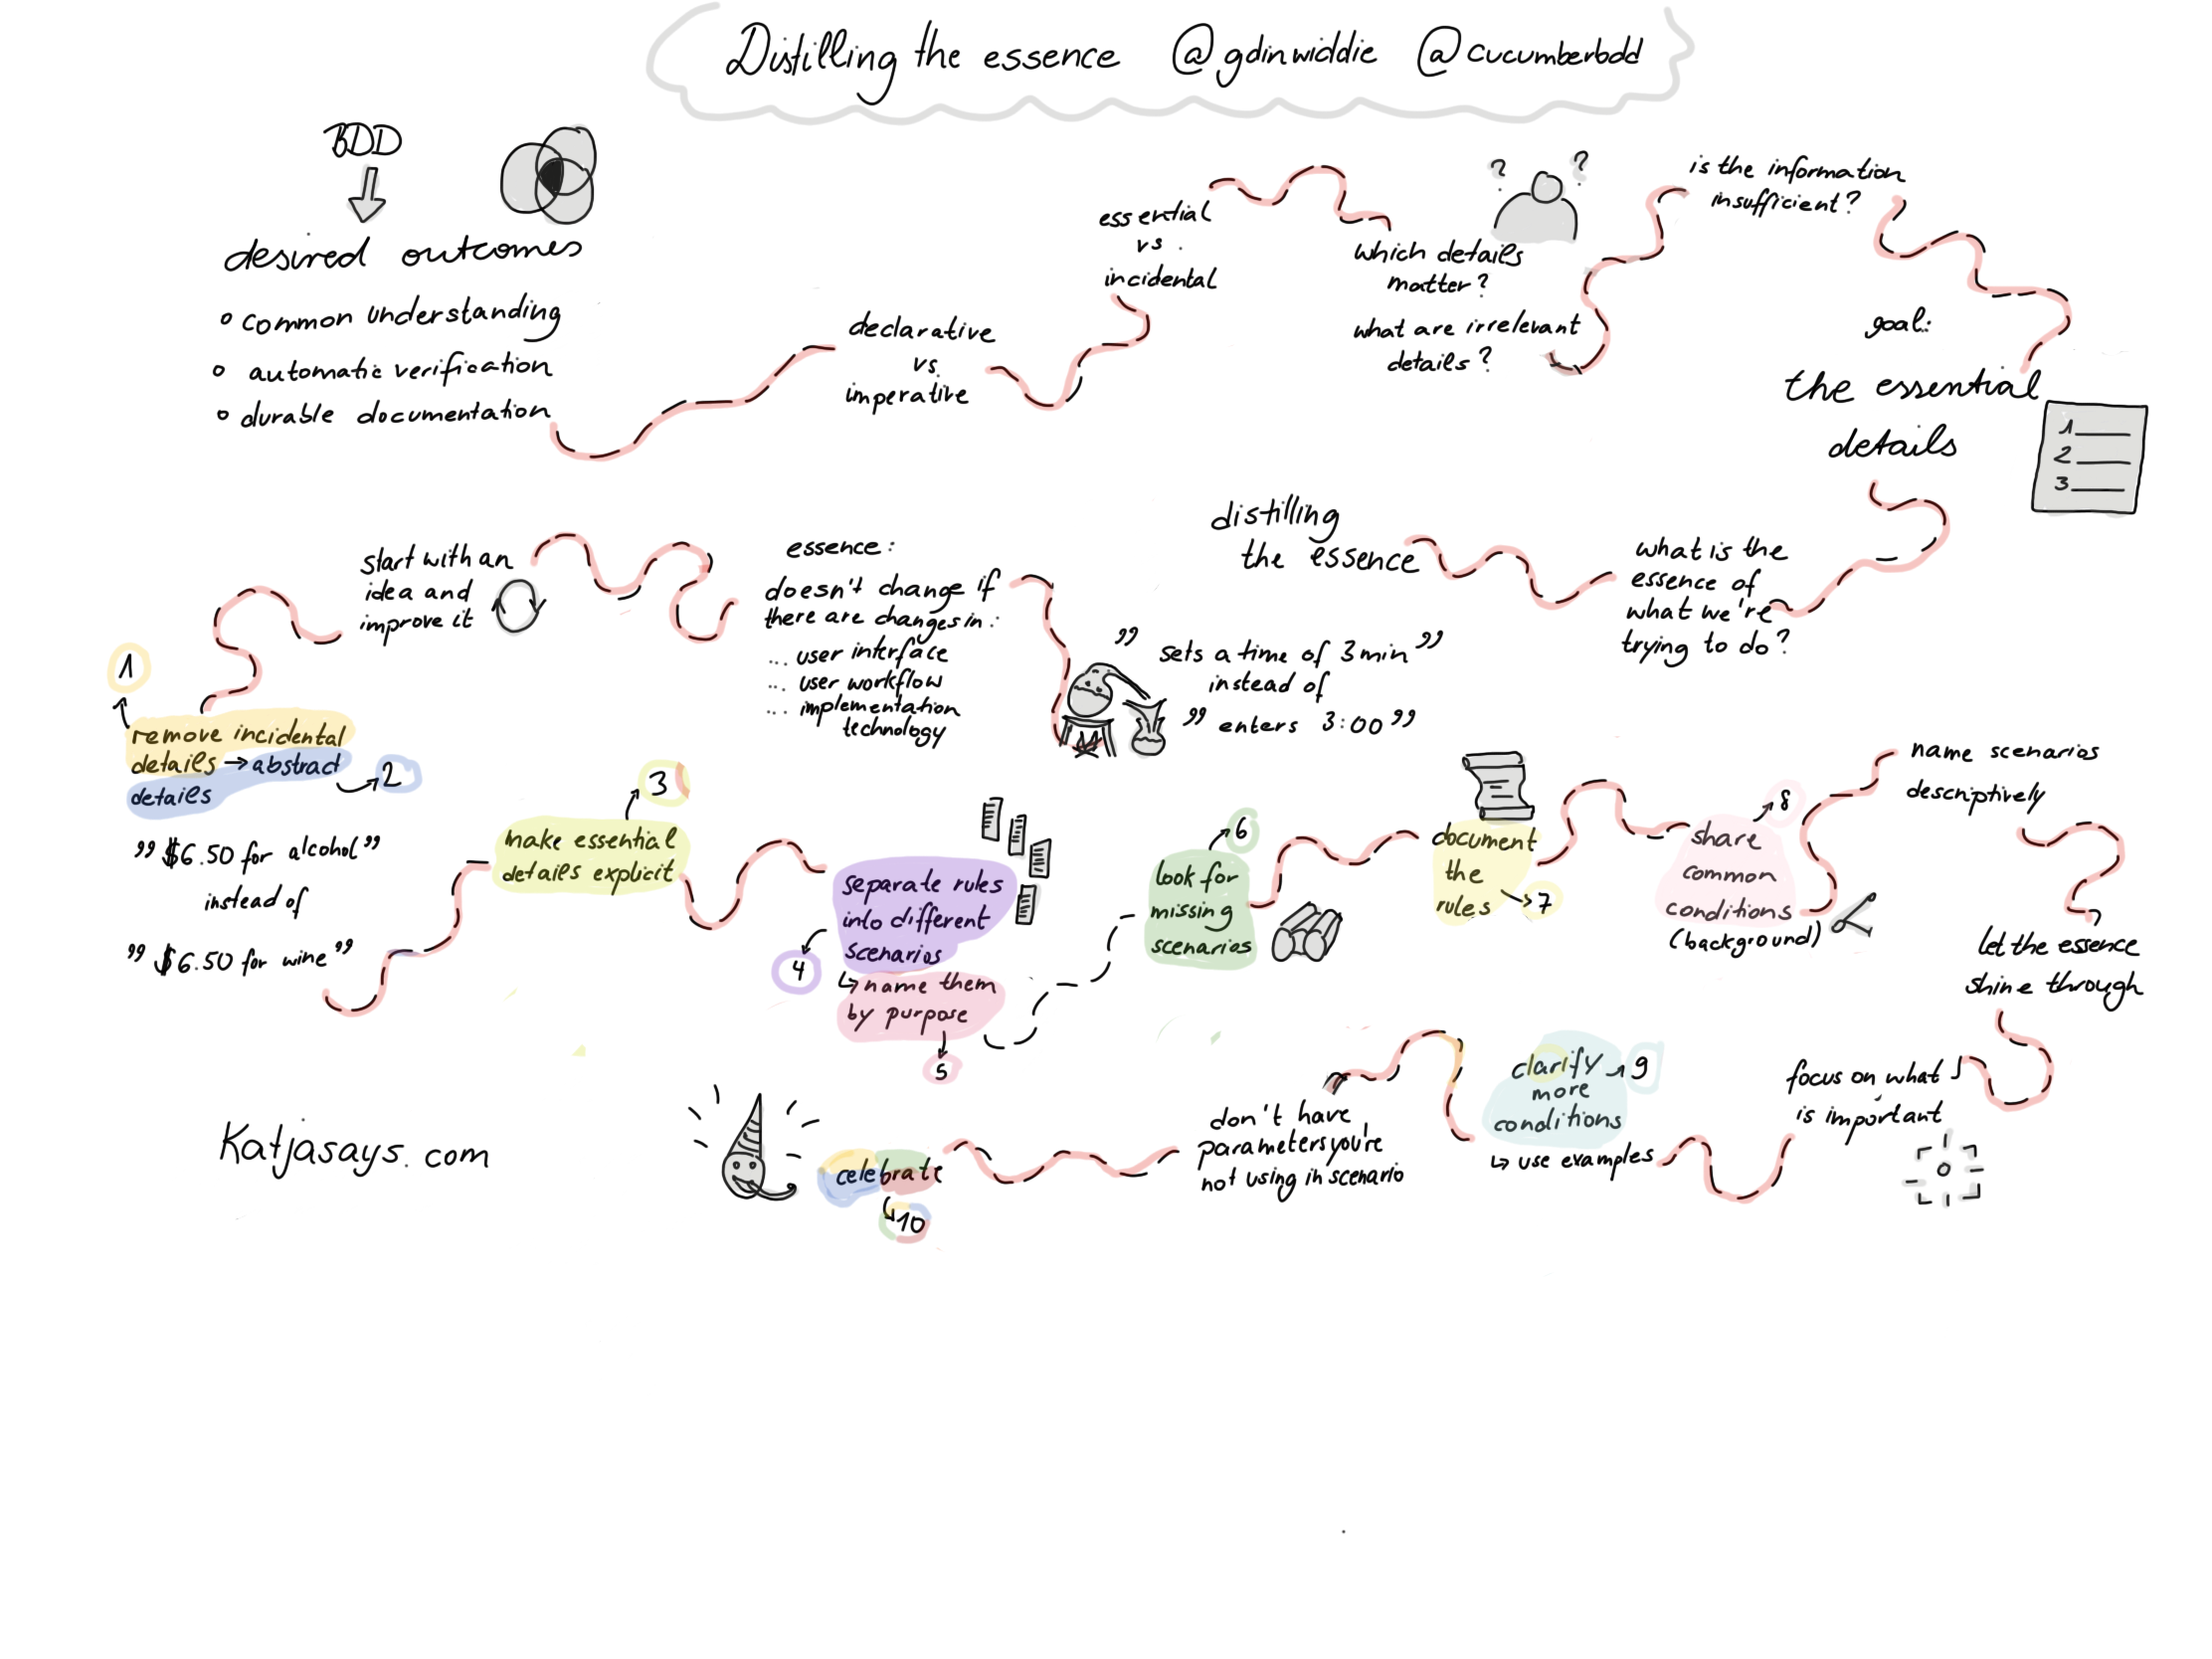 Distilling the essence sketchnote